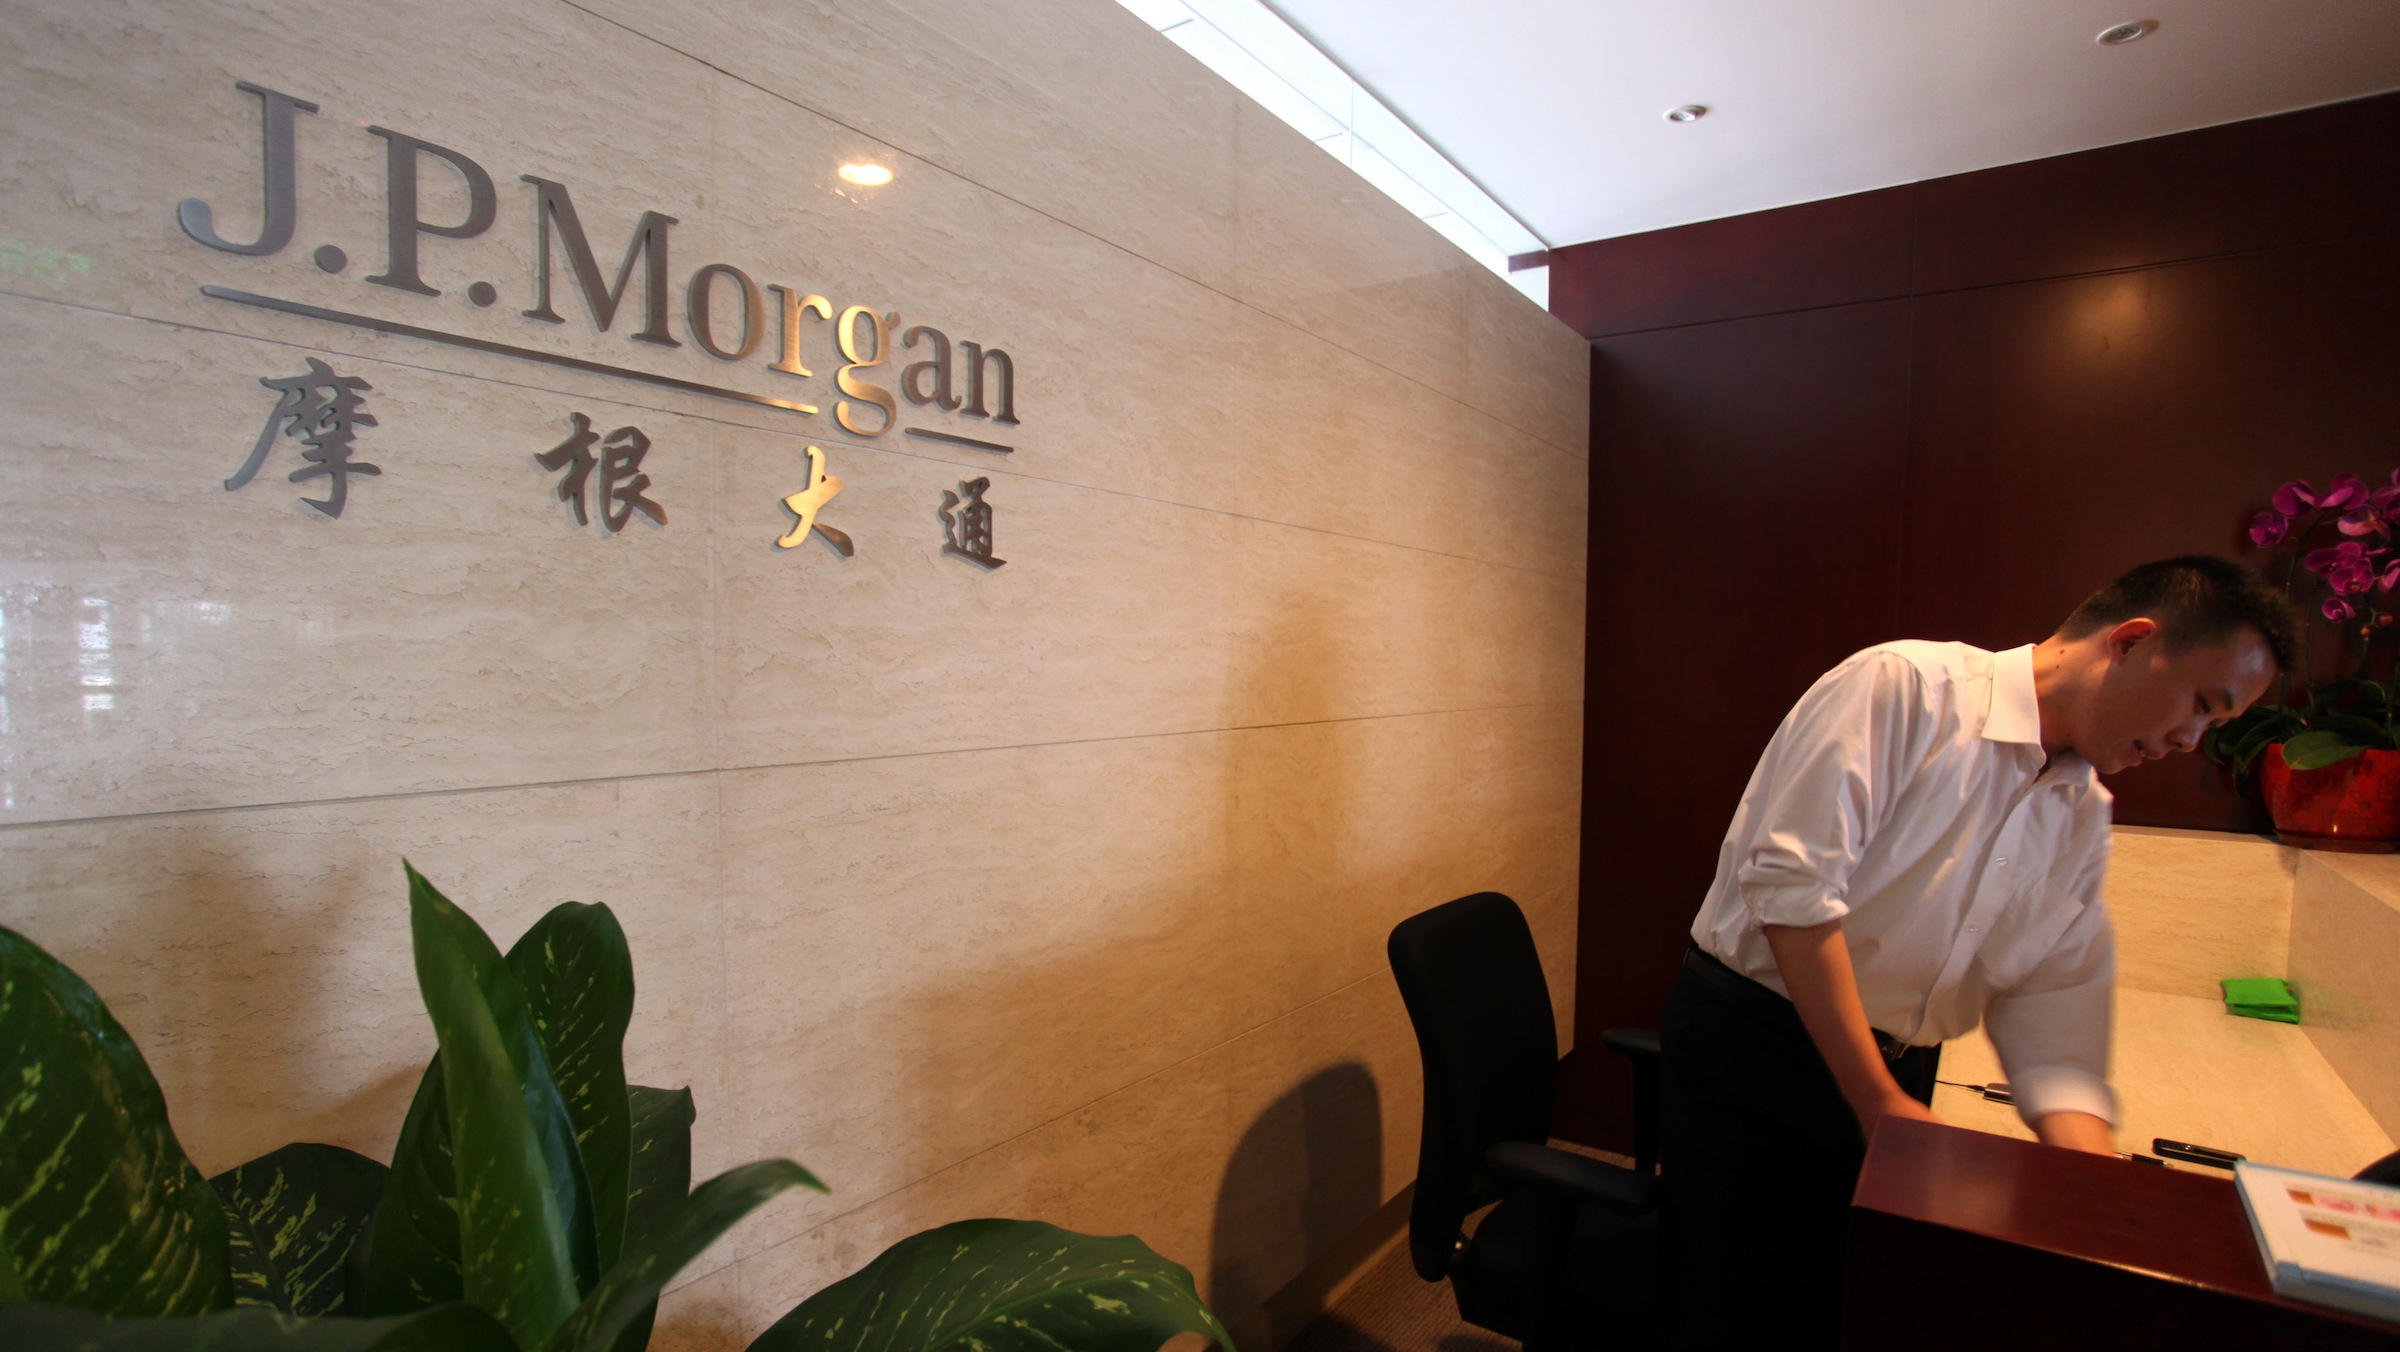 --FILE--A Chinese employee works at a branch of J.P.Morgan in Suzhou city, east Chinas Jiangsu province, 21 July 2012.  Federal authorities have opened a bribery investigation into whether JPMorgan Chase hired the children of powerful Chinese officials to help the bank win lucrative business in the booming nation, according to a confidential United States government document. The Hong Kong office of JPMorgan also hired the daughter of a Chinese railway official. That official was later detained on accusations of doling out government contracts in exchange for cash bribes, the government document and public records show. In May, according to a copy of the confidential government document, the S.E.C.s anti-bribery unit requested from JPMorgan a battery of records about Tang Xiaoning. He is the son of Tang Shuangning, who since 2007 has been chairman of the China Everbright Group. Before that, the elder Mr. Tang was the vice chairman of Chinas top banking regulator. The agency also inquired about JPMorgans hiring of Zhang Xixi, the daughter of the railway official Zhang Shuguang. Among other information, the S.E.C. sought documents sufficient to identify all persons involved in the decision to hire her.